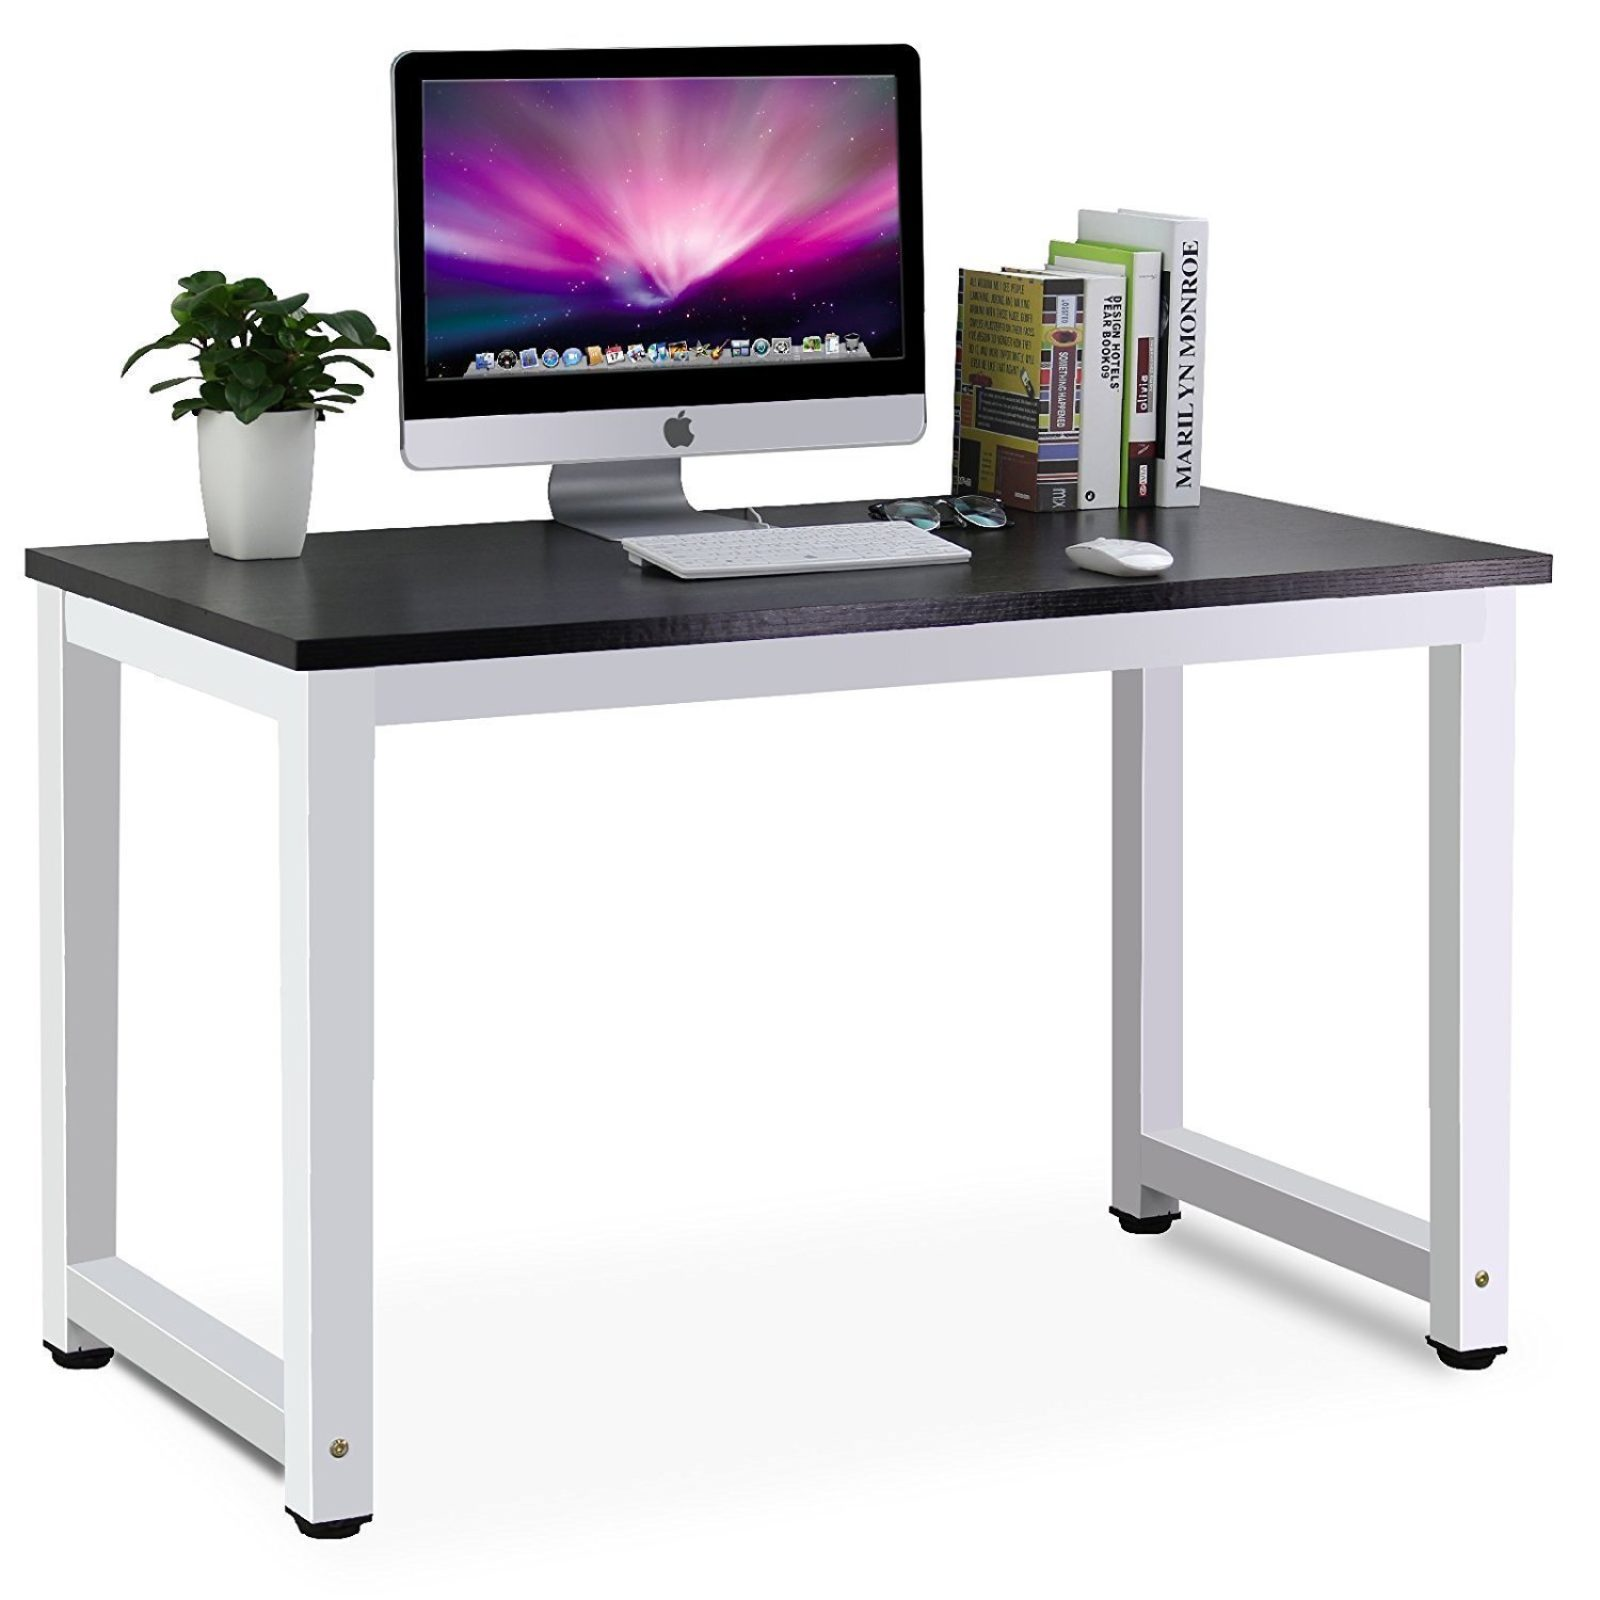 Desk Option 1